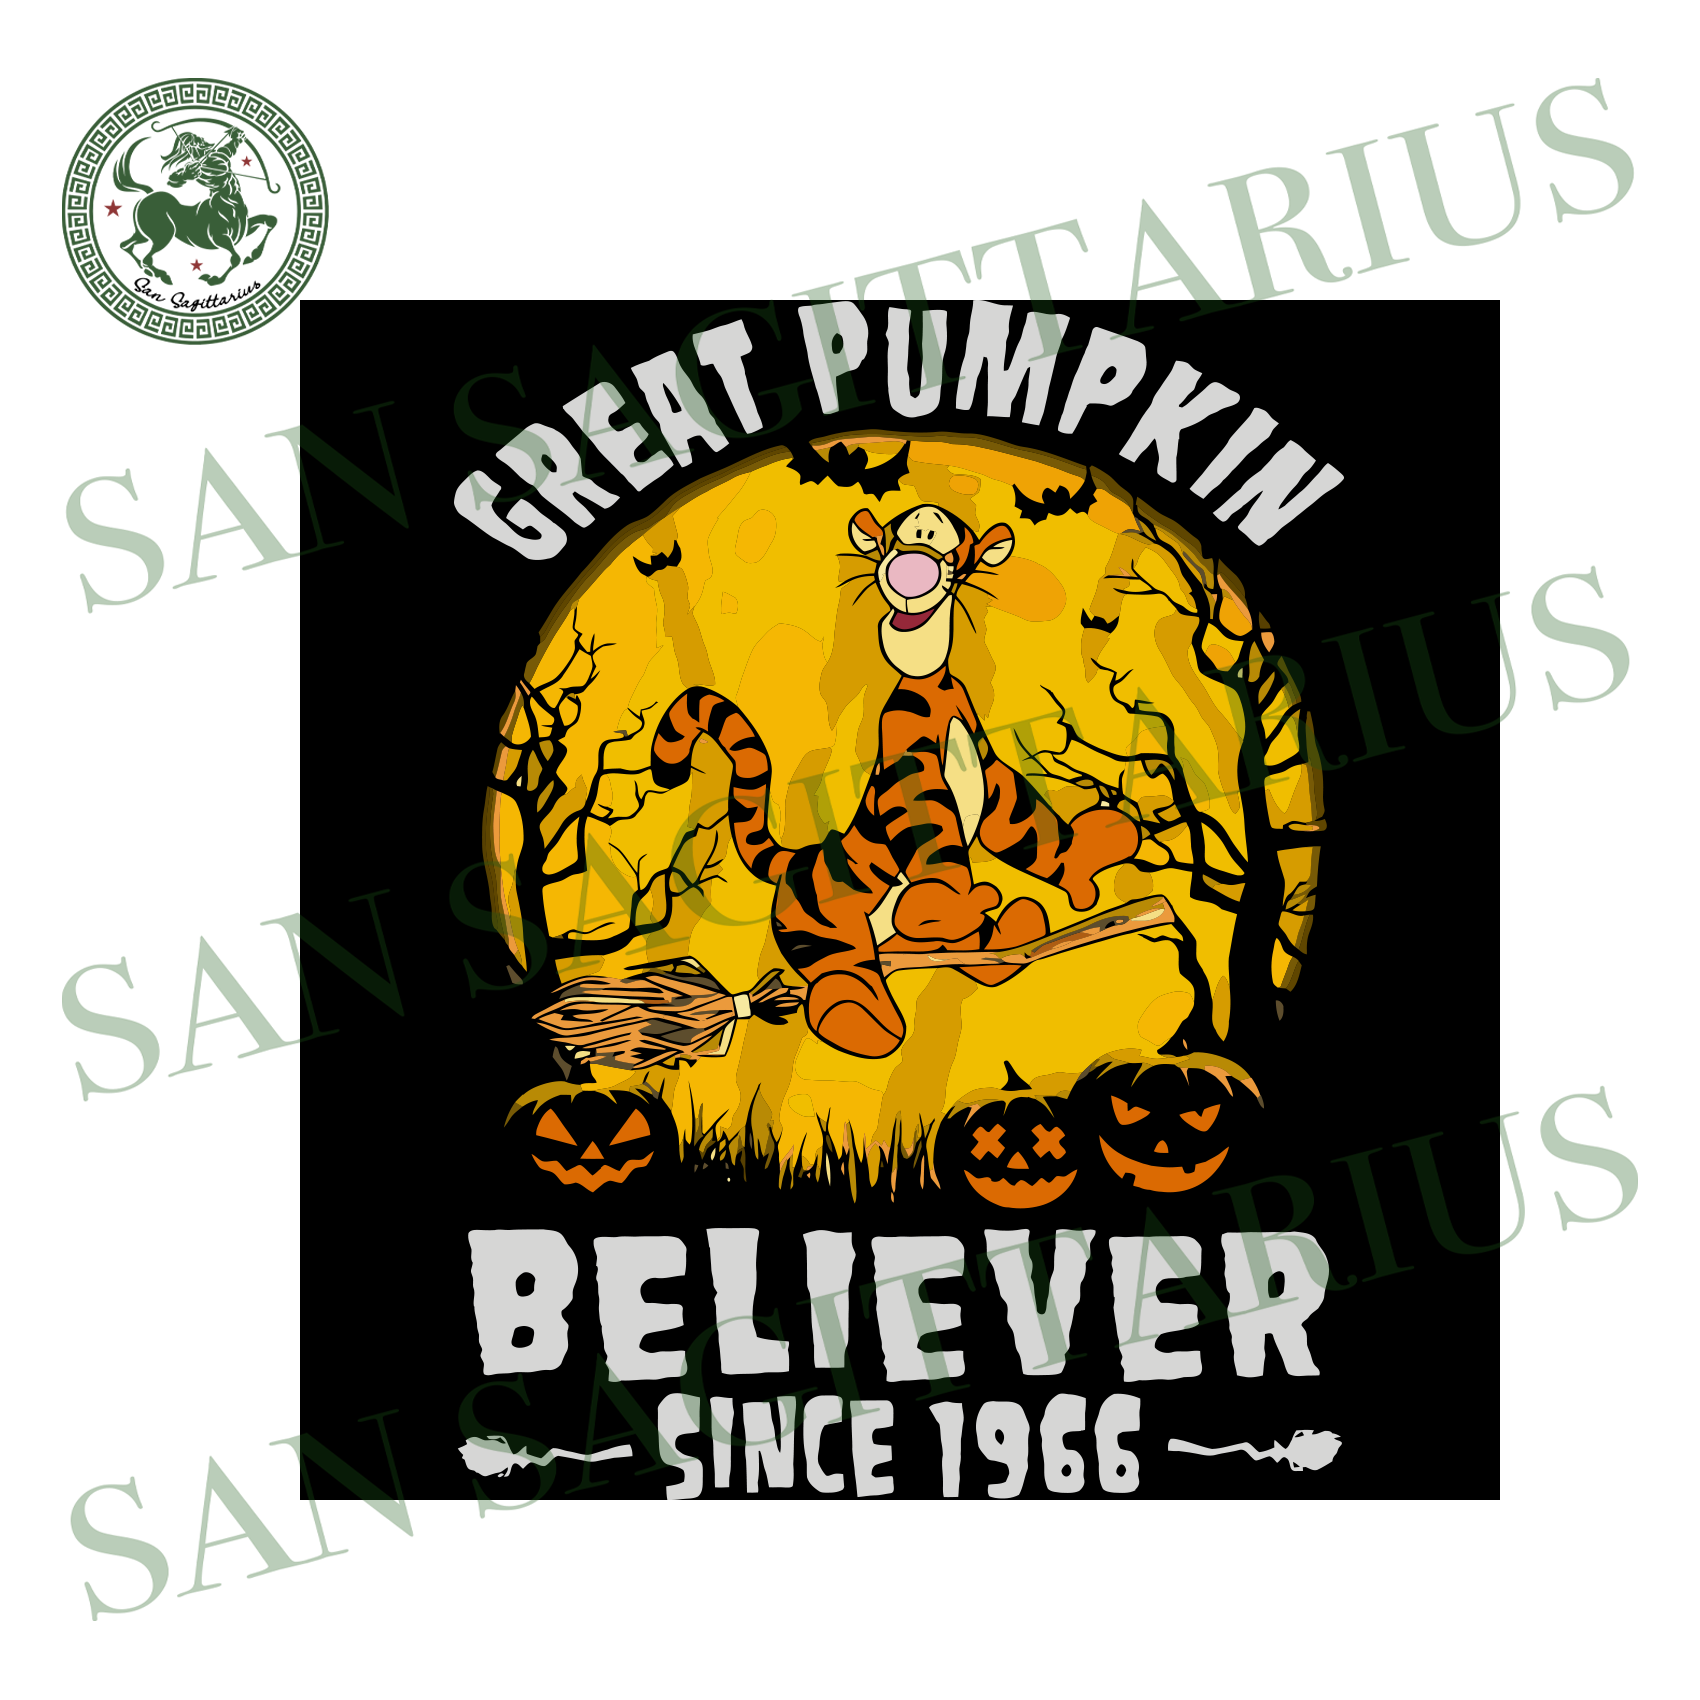 Tigger Great Pumpkin Believer Since 1966, Halloween Svg, Happy Halloween, Halloween Gift, Halloween Shirt, Halloween Icon, Halloween Vector, Nightmare Svg, Tigger Svg, Cute Tigger, Tigger Shi